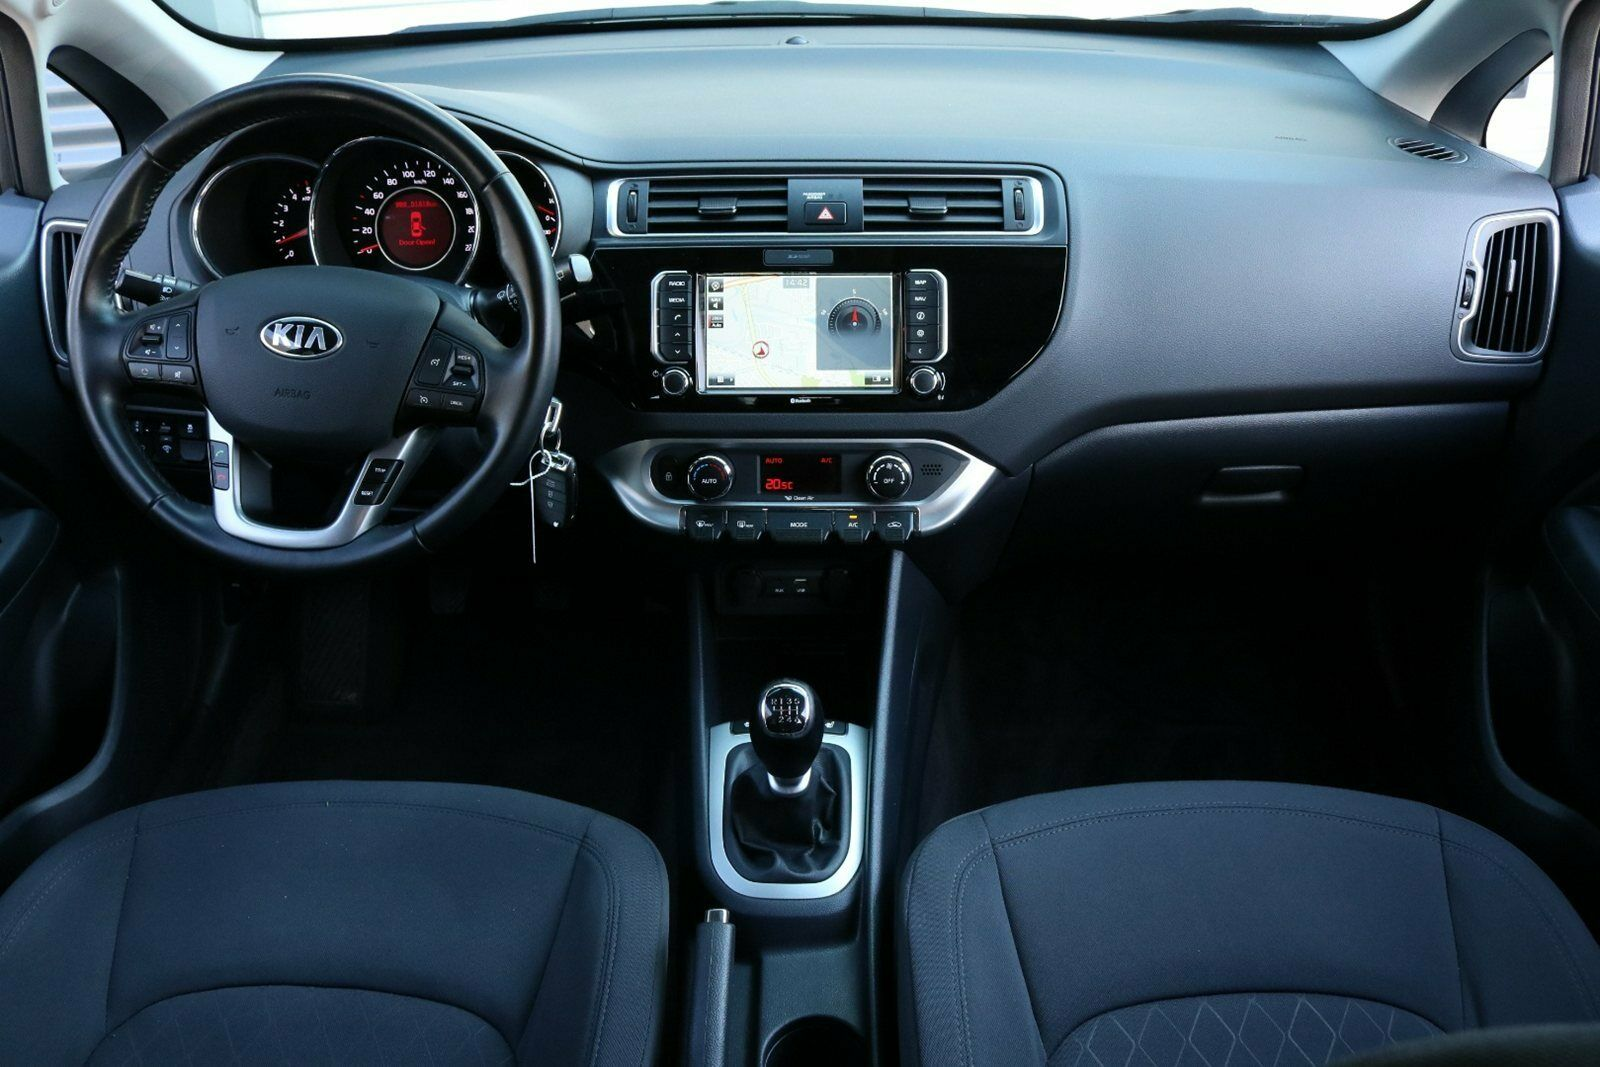 Kia Rio CRDi 90 Attraction+